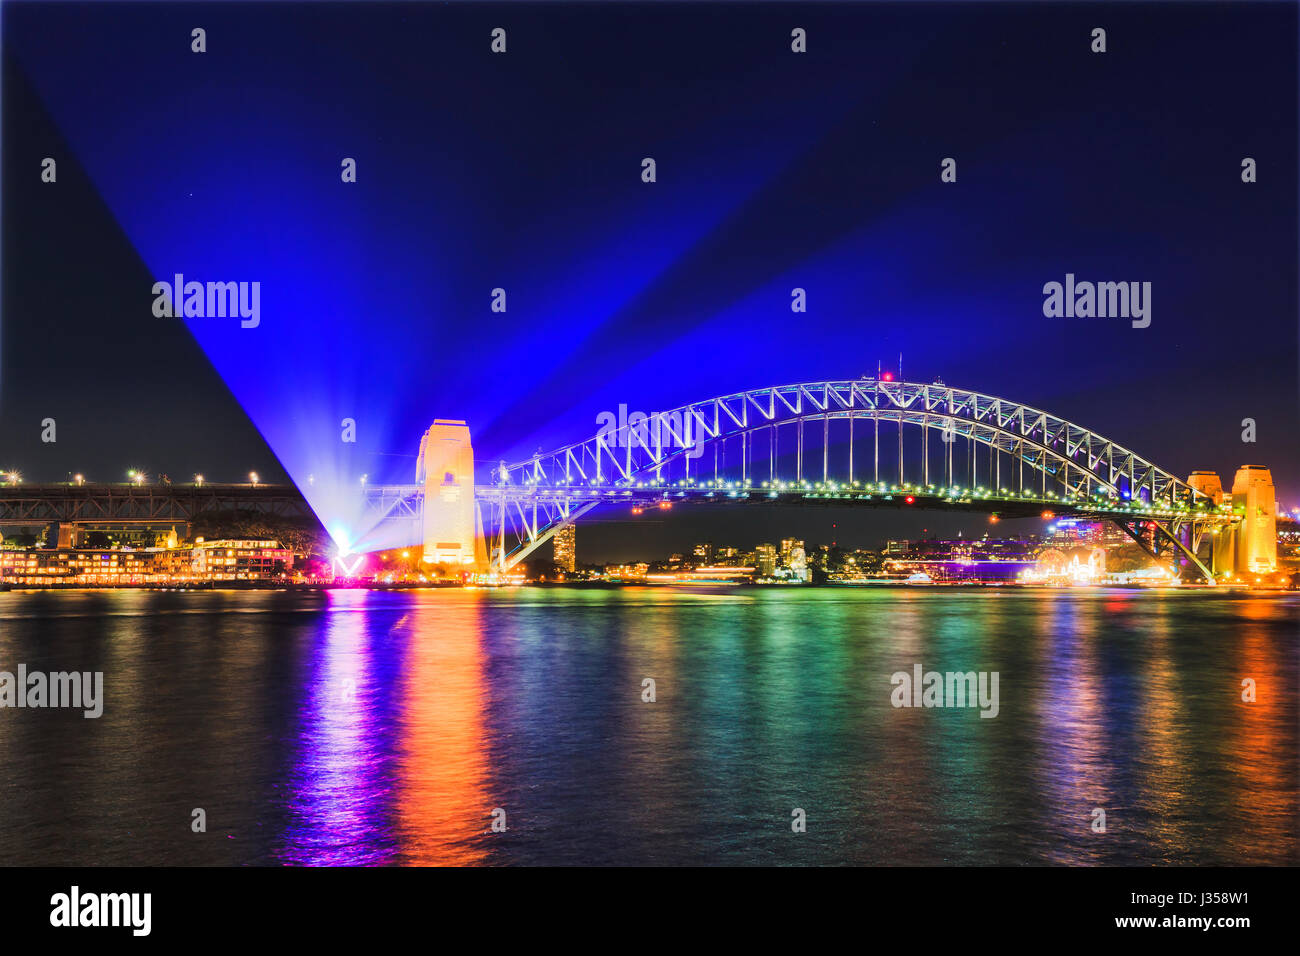 Projection from The Rocks under the Sydney Harbout bridge during Vivid Sydney light show festival. Illuminated arch - Stock Image